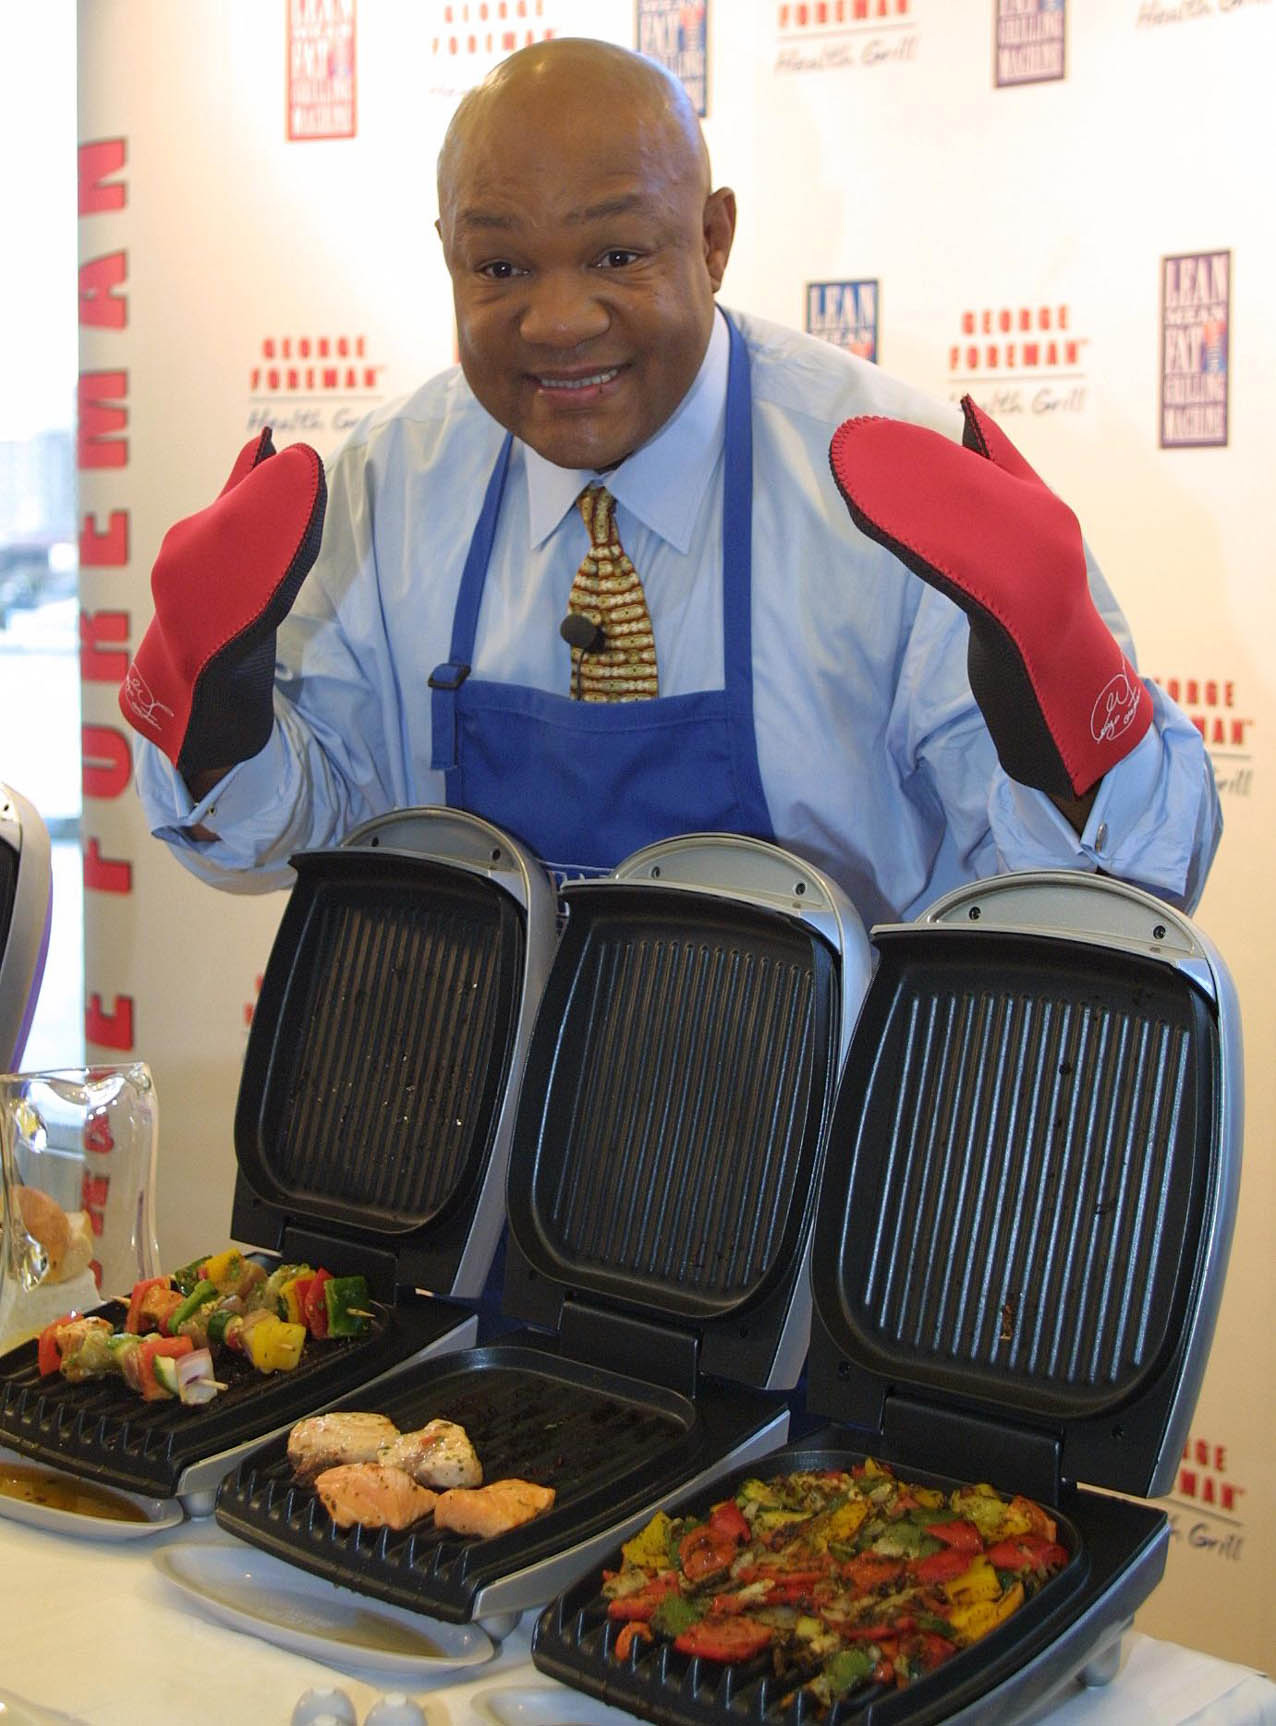 George Foreman found success after his boxing career as a businessman with the George Foreman Lean Mean Fat-Reducing Grilling Machine, which has sold over 120 million units worldwide. | AP